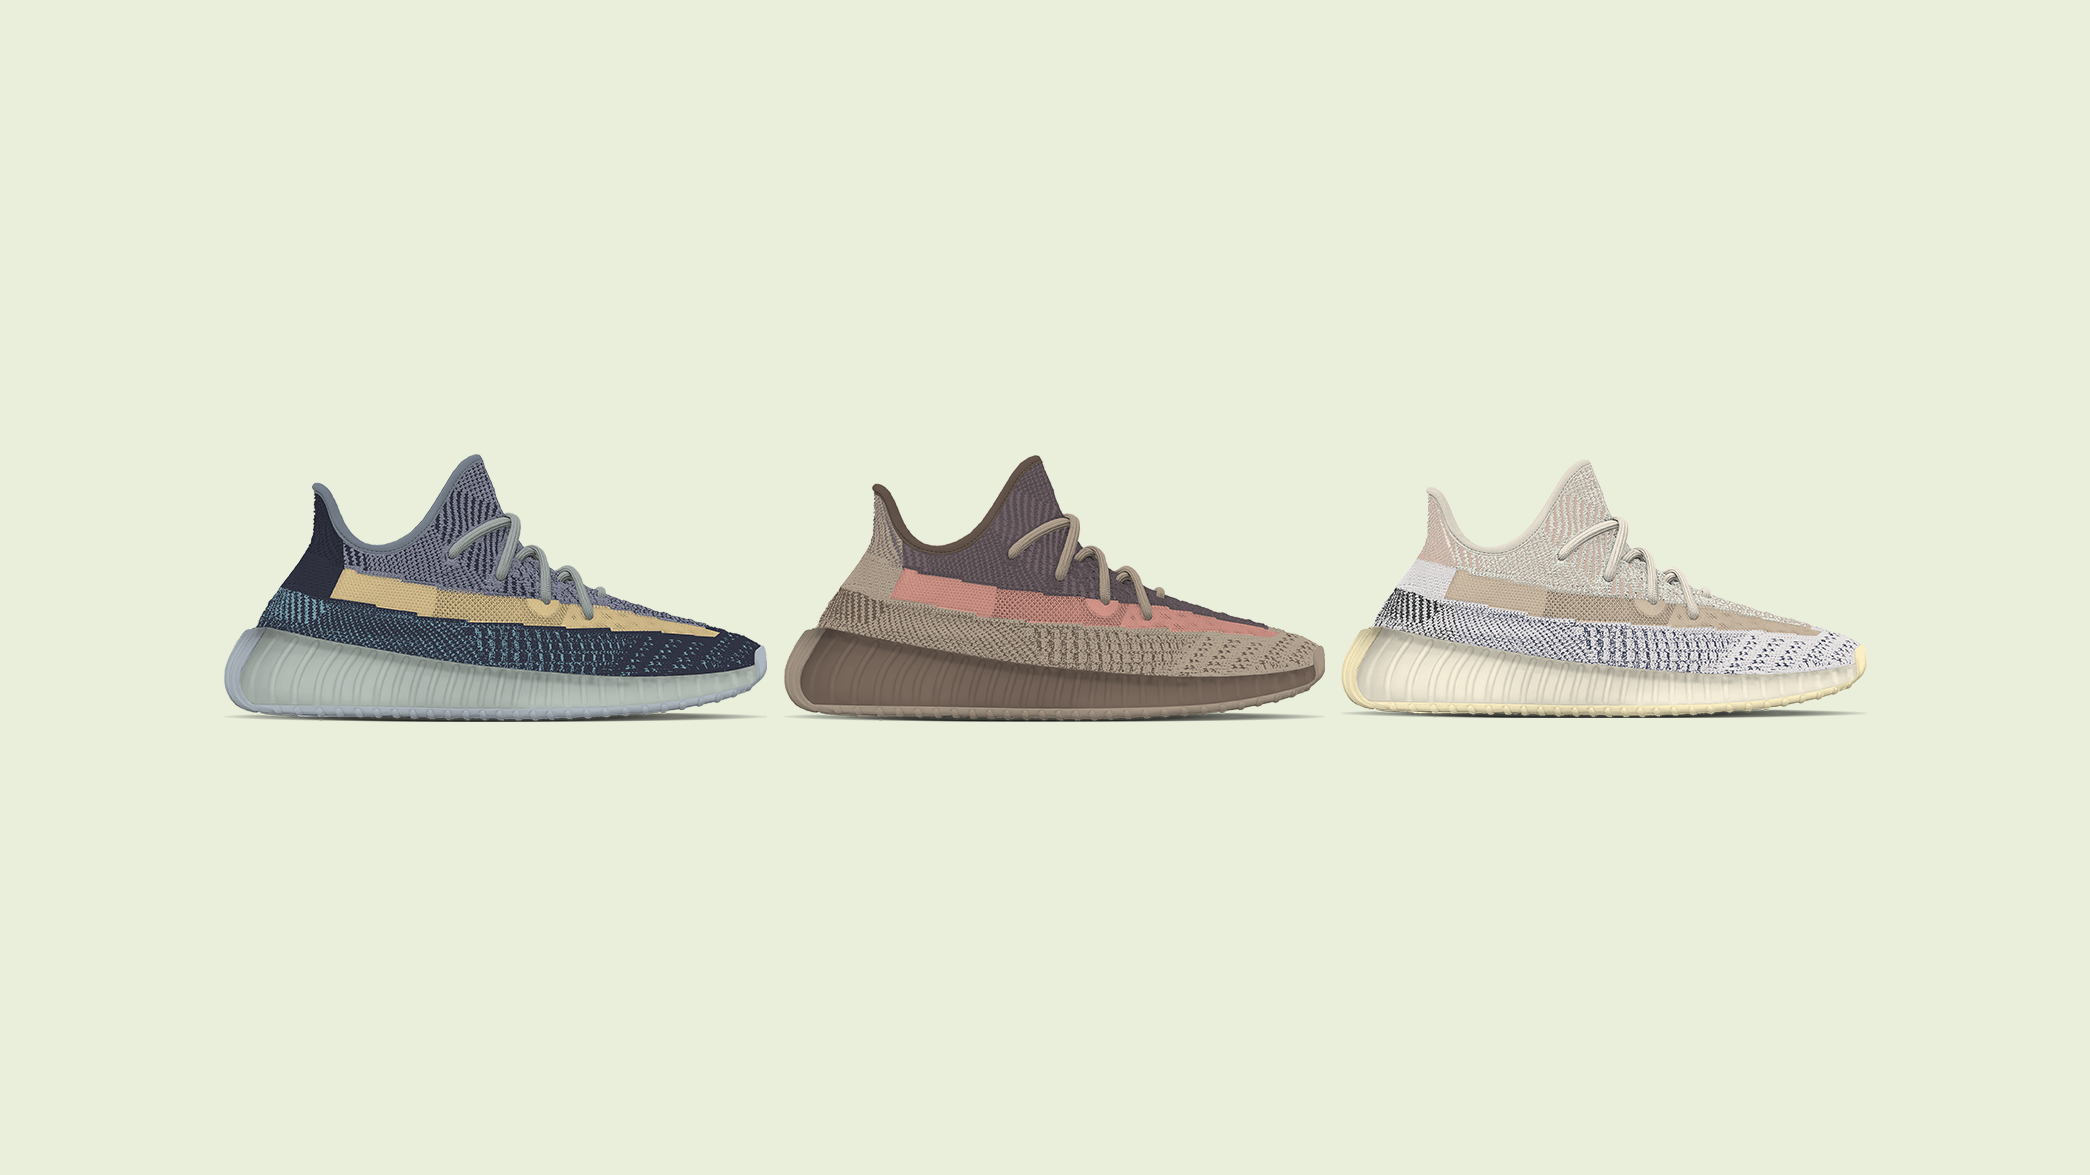 YEEZY BOOST 350 V2 SS21 Releases